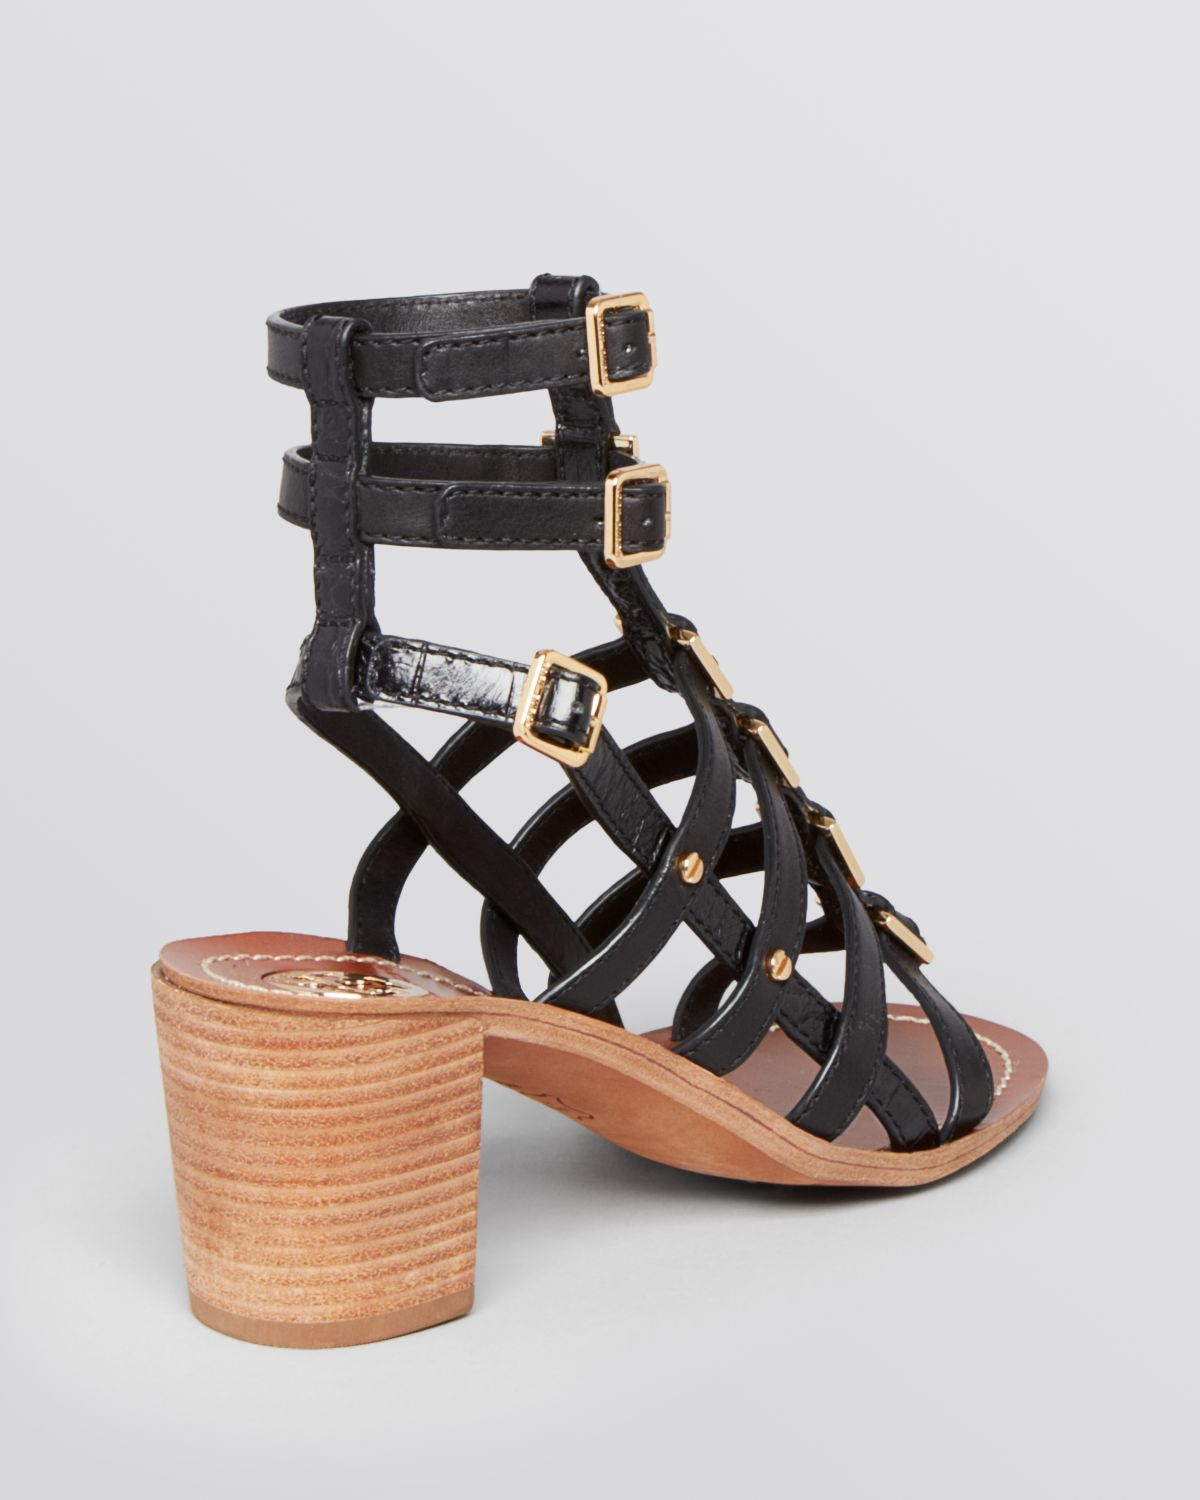 Tory burch Gladiator Sandals Reggie Block Heel in Black | Lyst